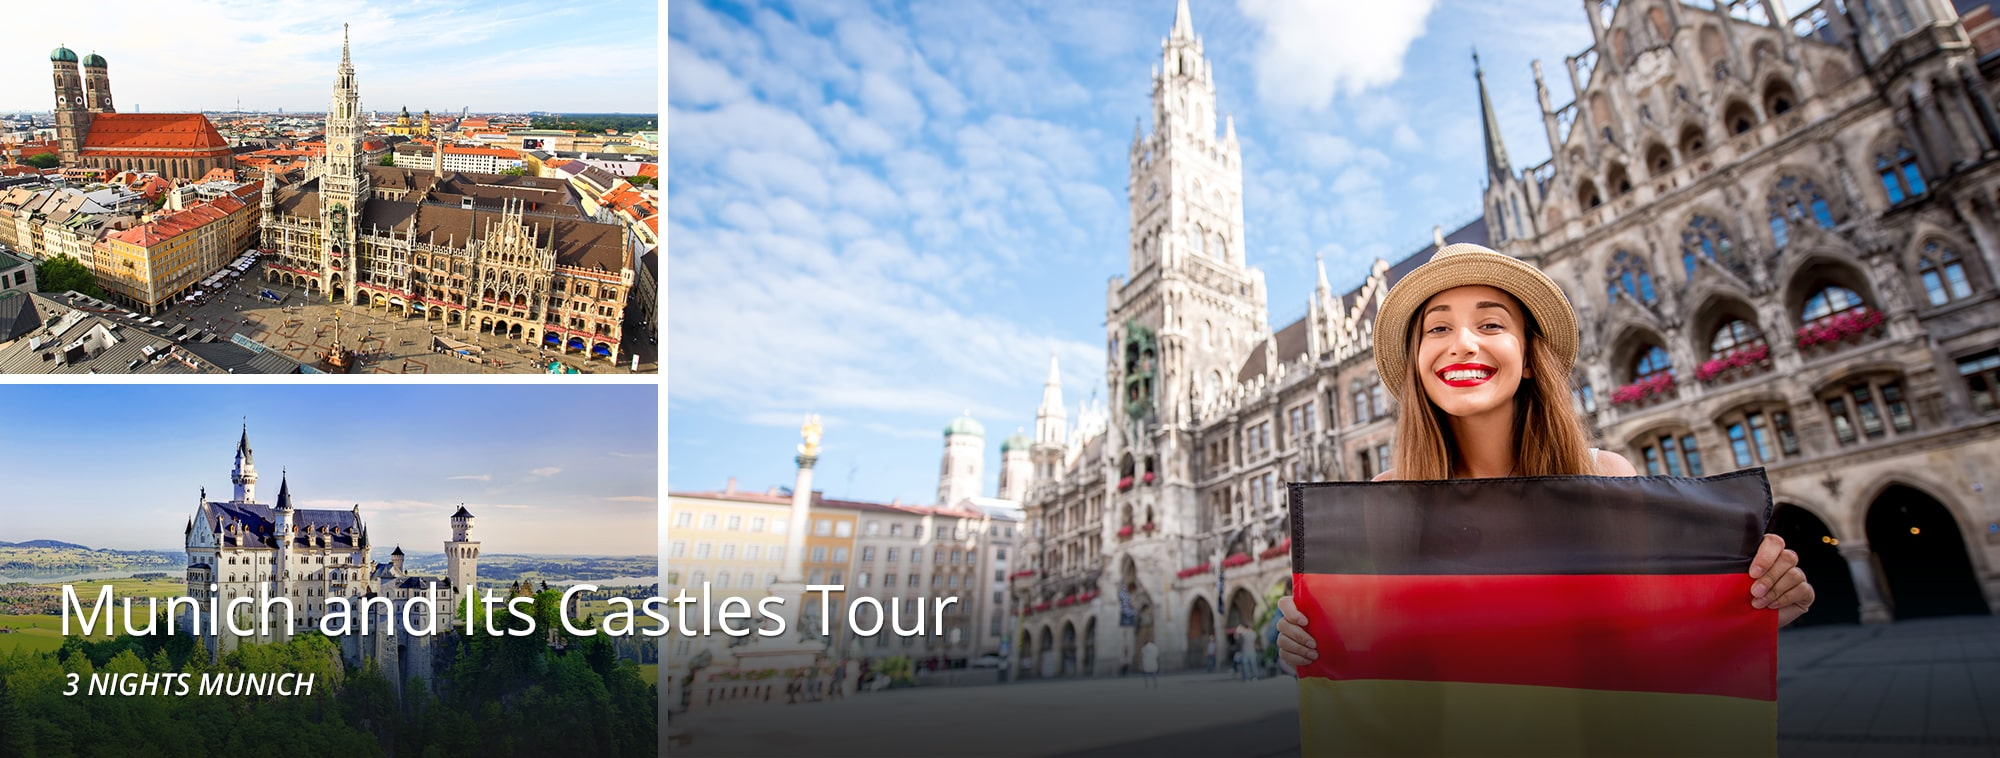 Munich and Its Castles Tour Top Banner